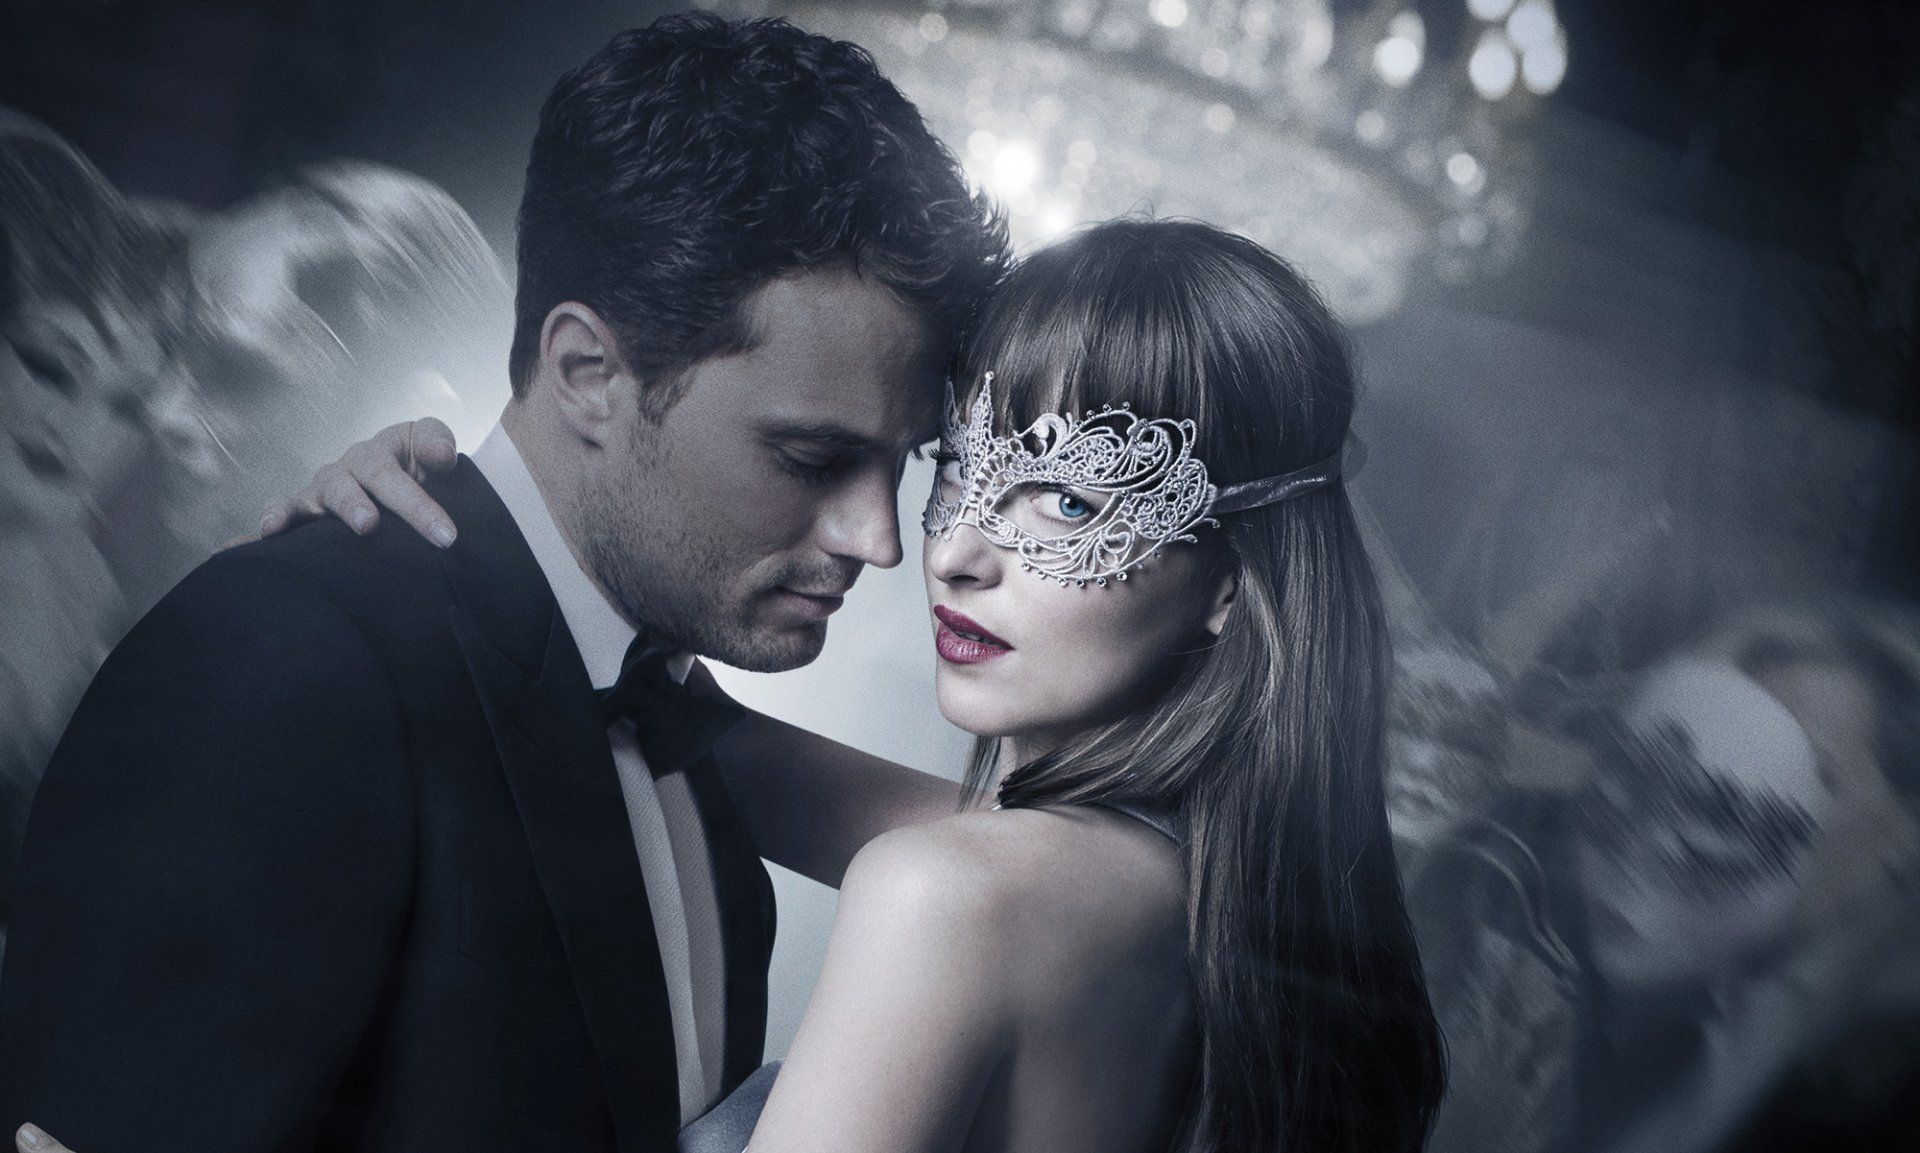 Fifty Shades Freed Wallpapers - Top Free Fifty Shades Freed Backgrounds -  WallpaperAccess